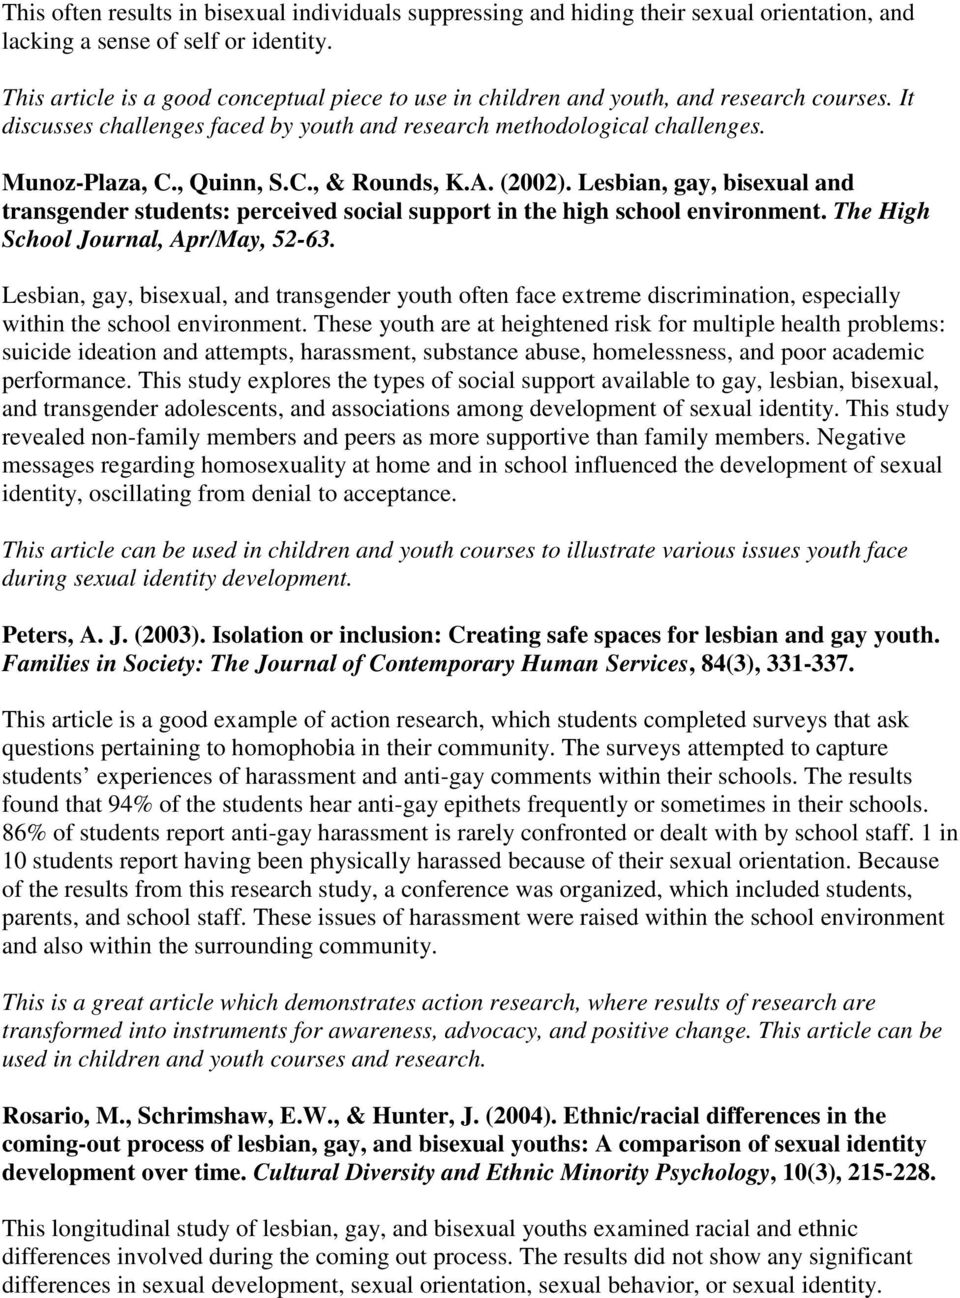 A. (2002). Lesbian, gay, bisexual and transgender students: perceived social support in the high school environment. The High School Journal, Apr/May, 52-63.